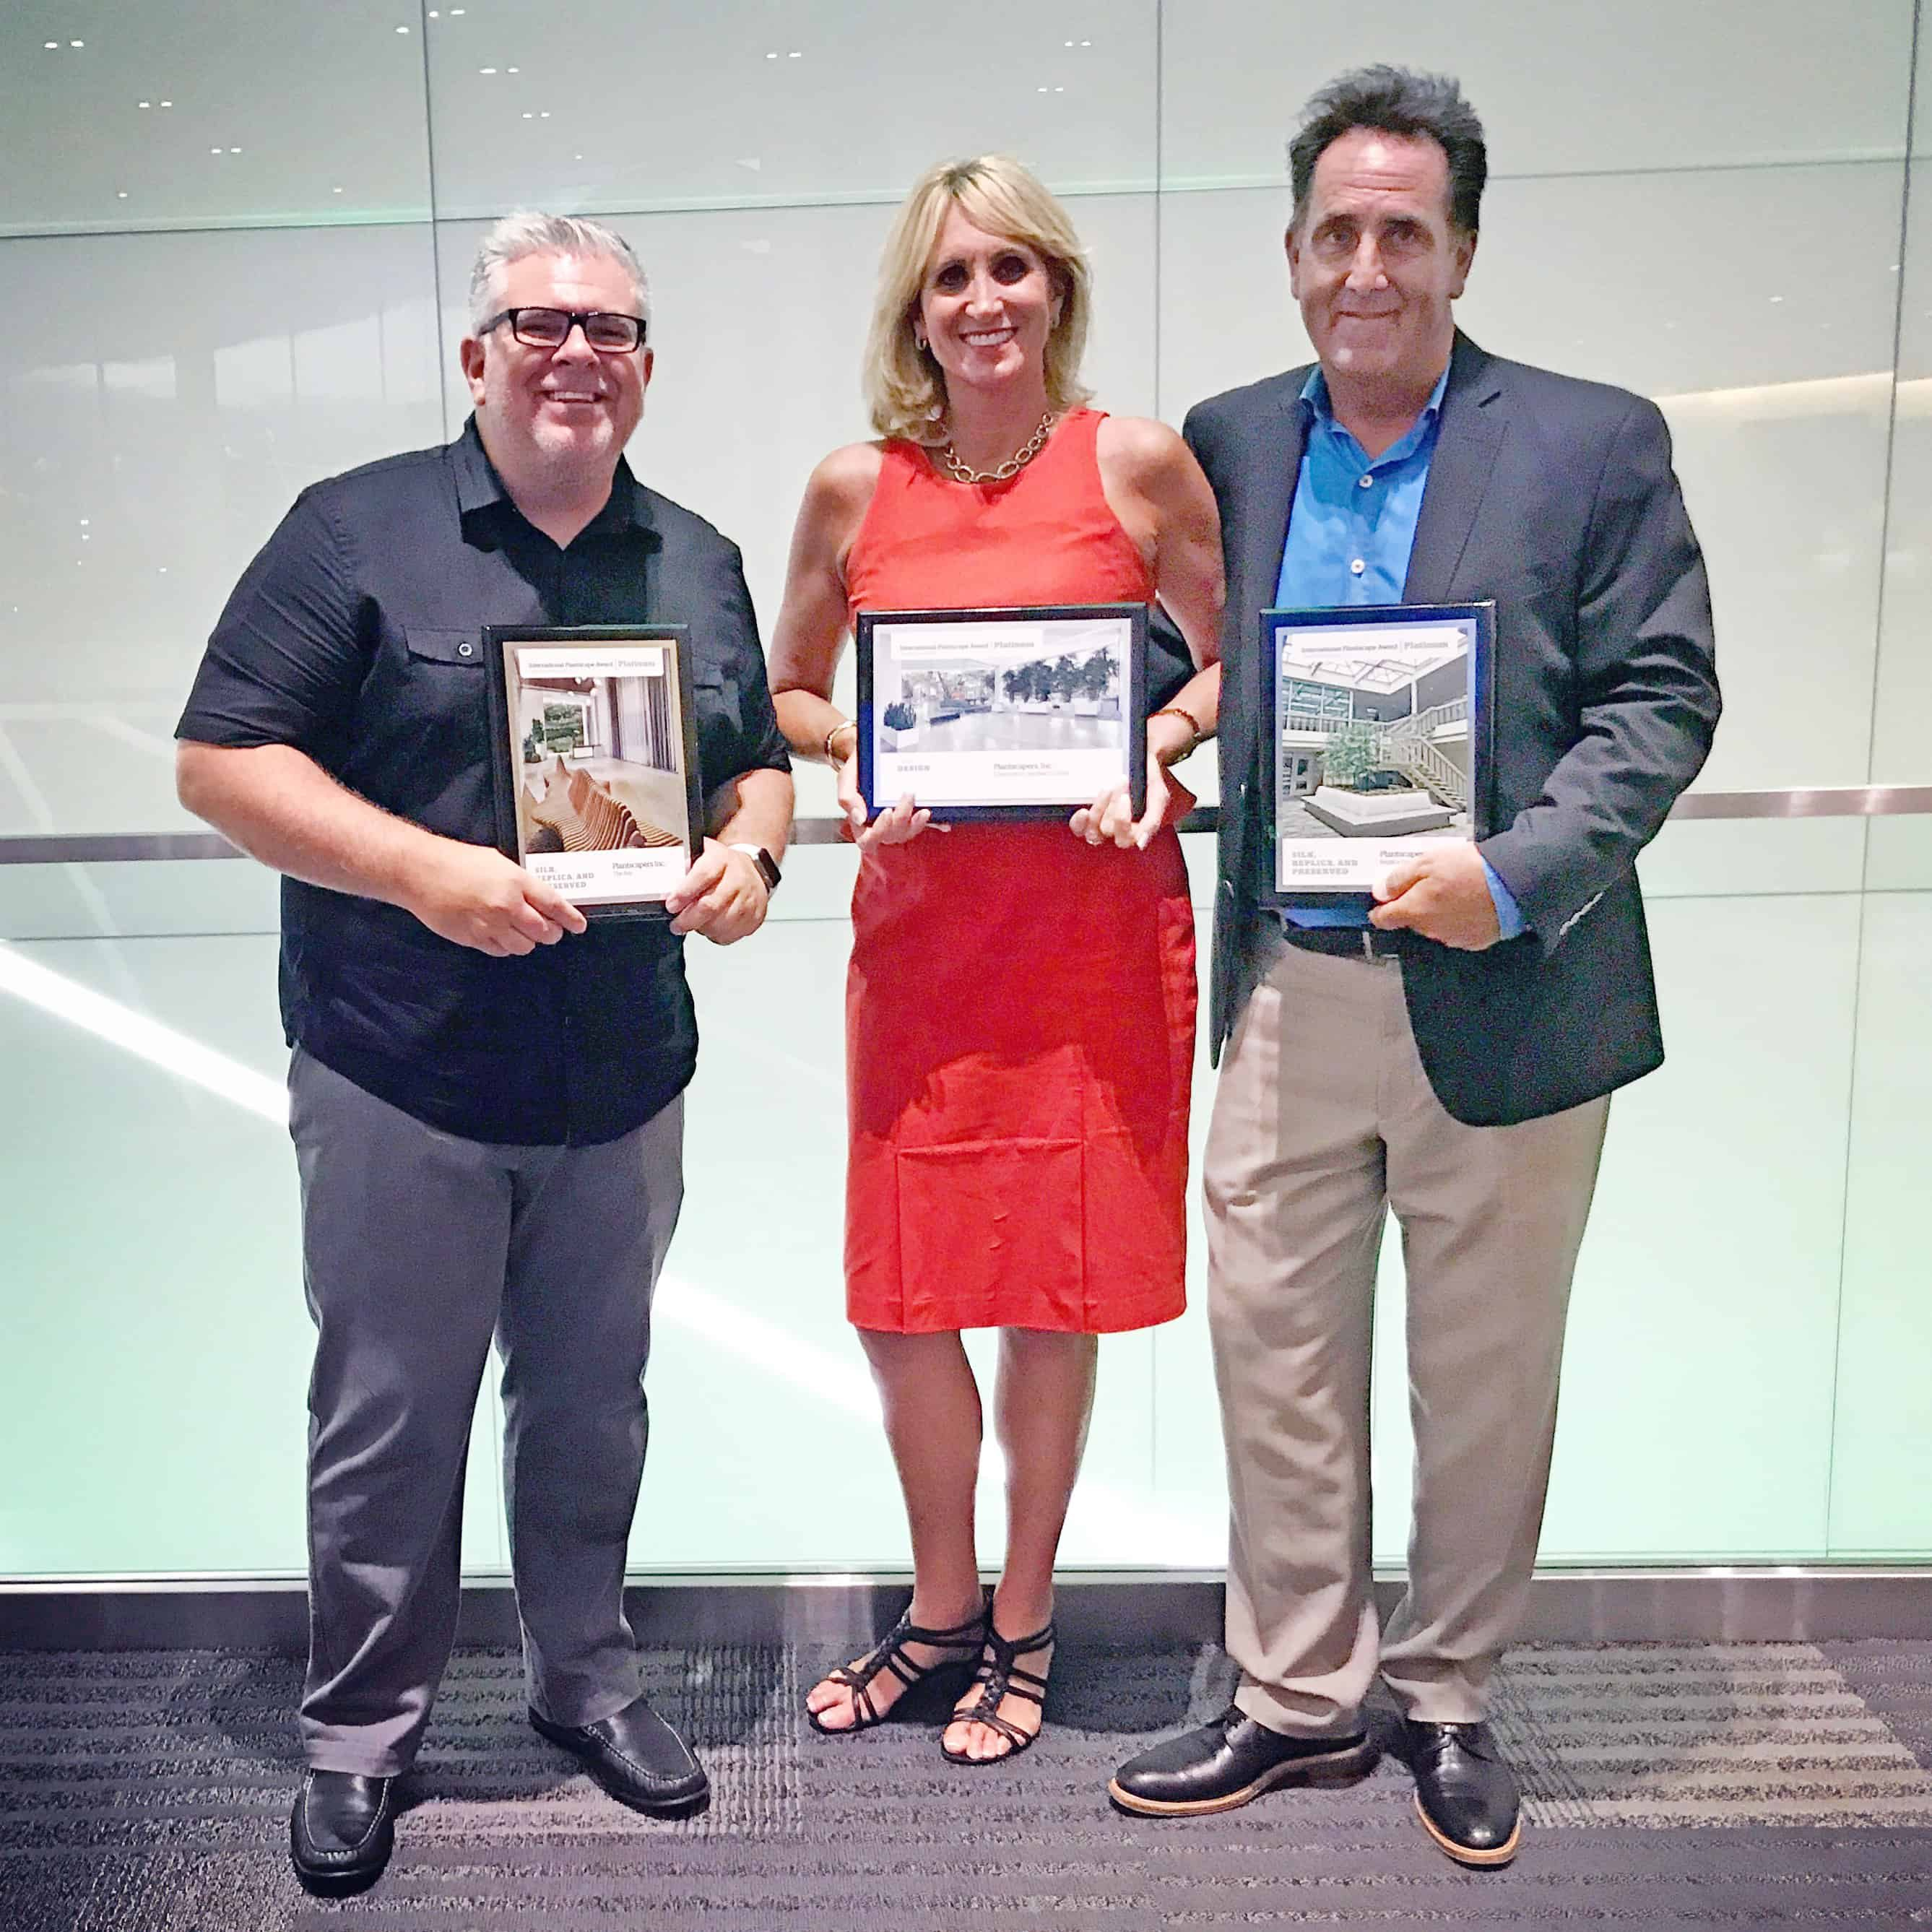 Jason, Julie and Mark receive platinum awards from American Hort.